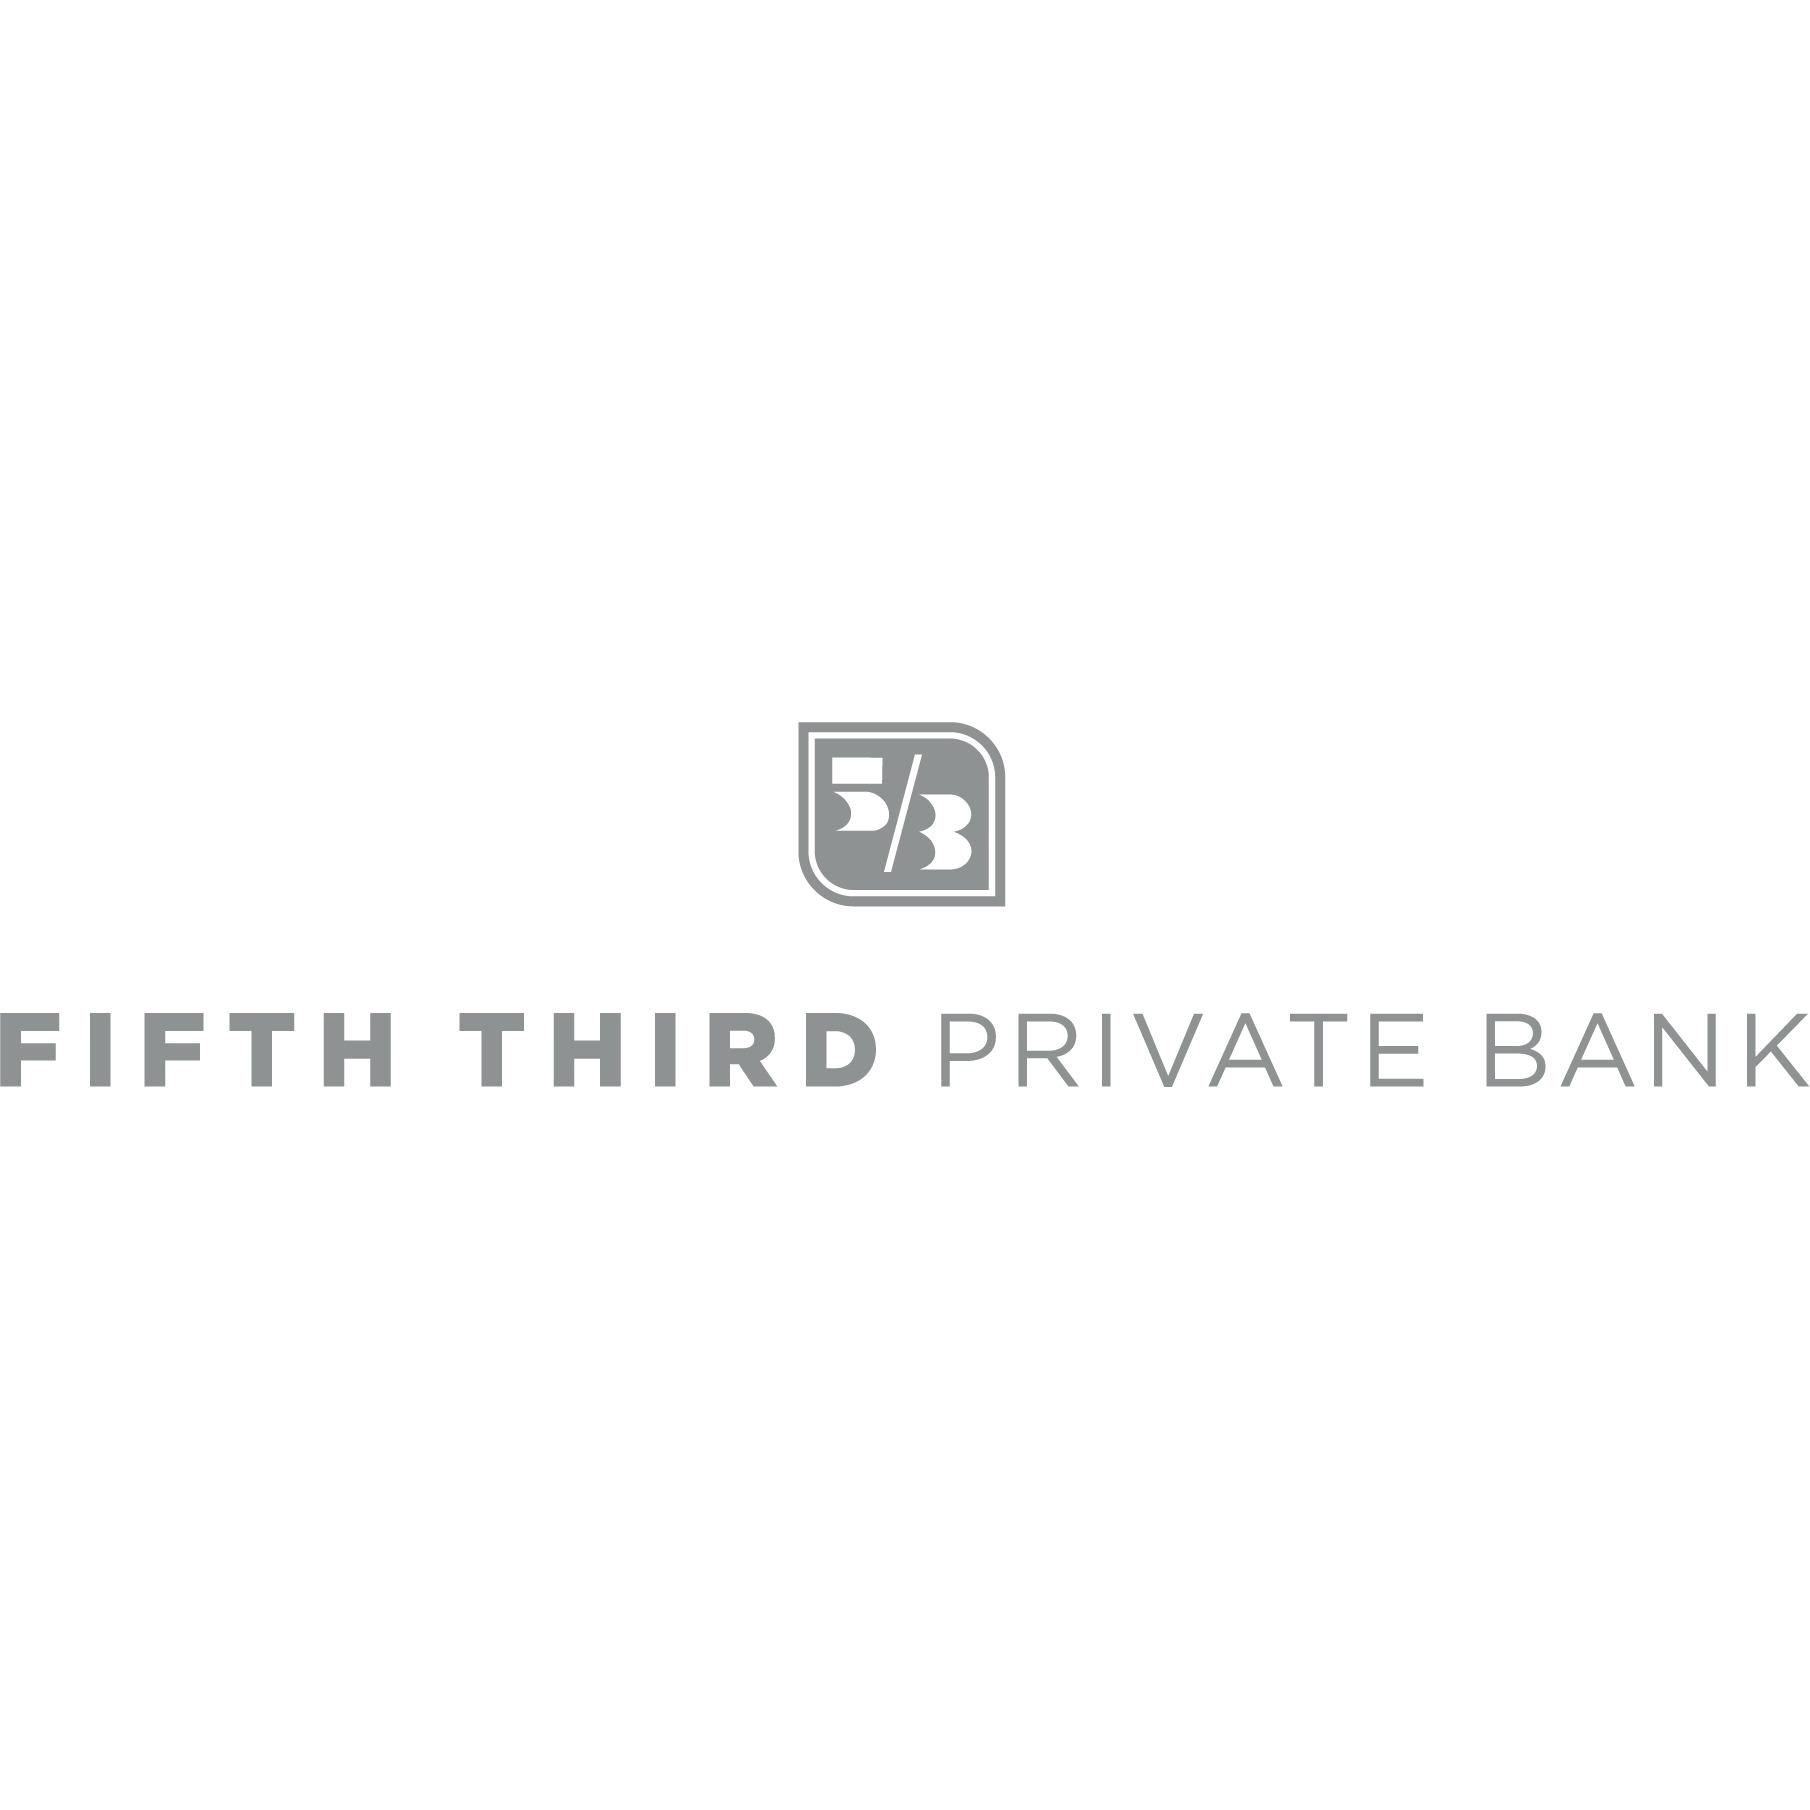 Fifth Third Private Bank - Joseph Schaefer